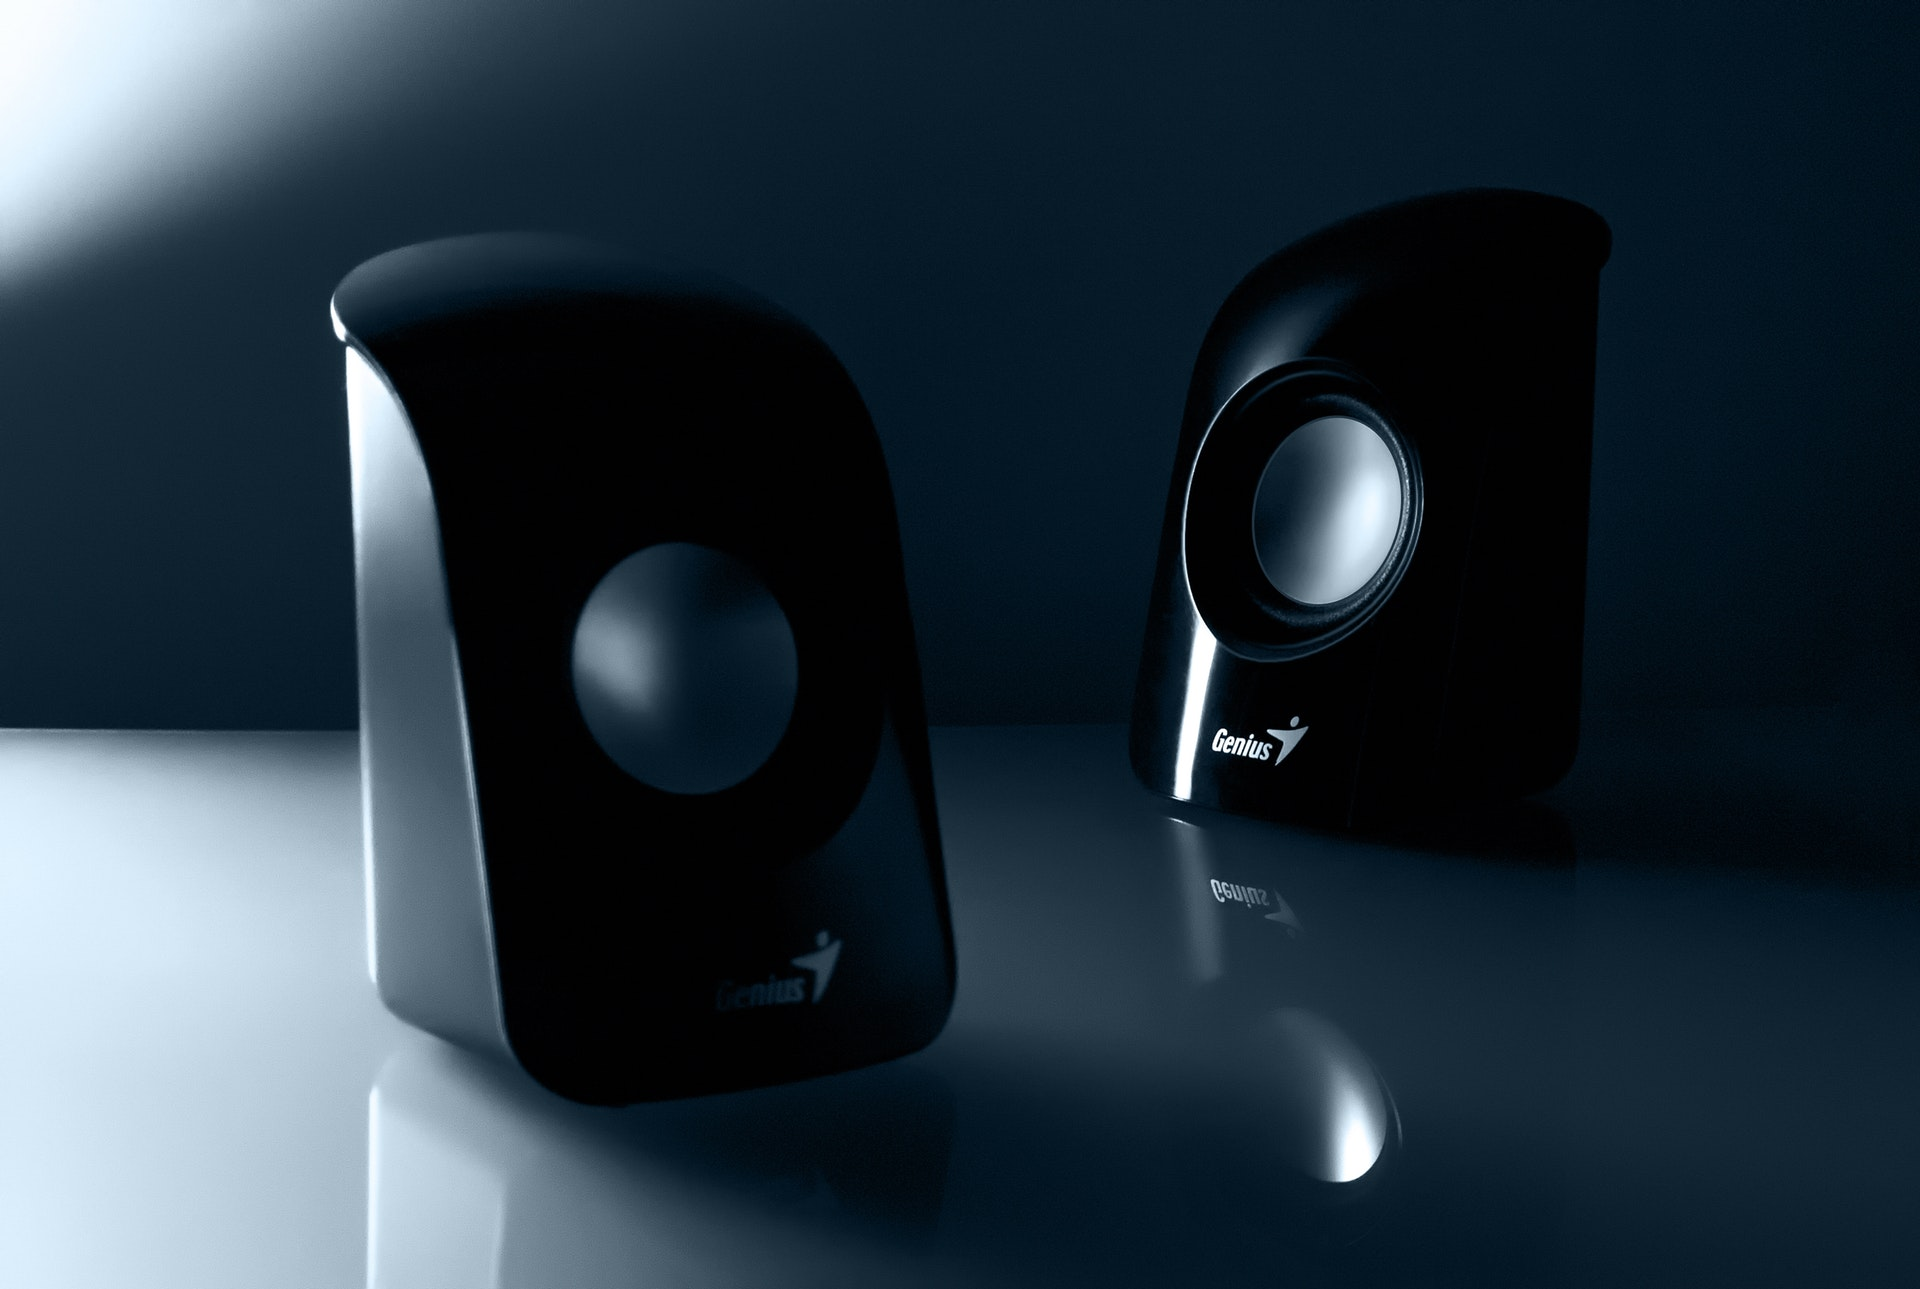 Wireless Speaker - Consider These 5 Things Before Buying a Wireless Speaker